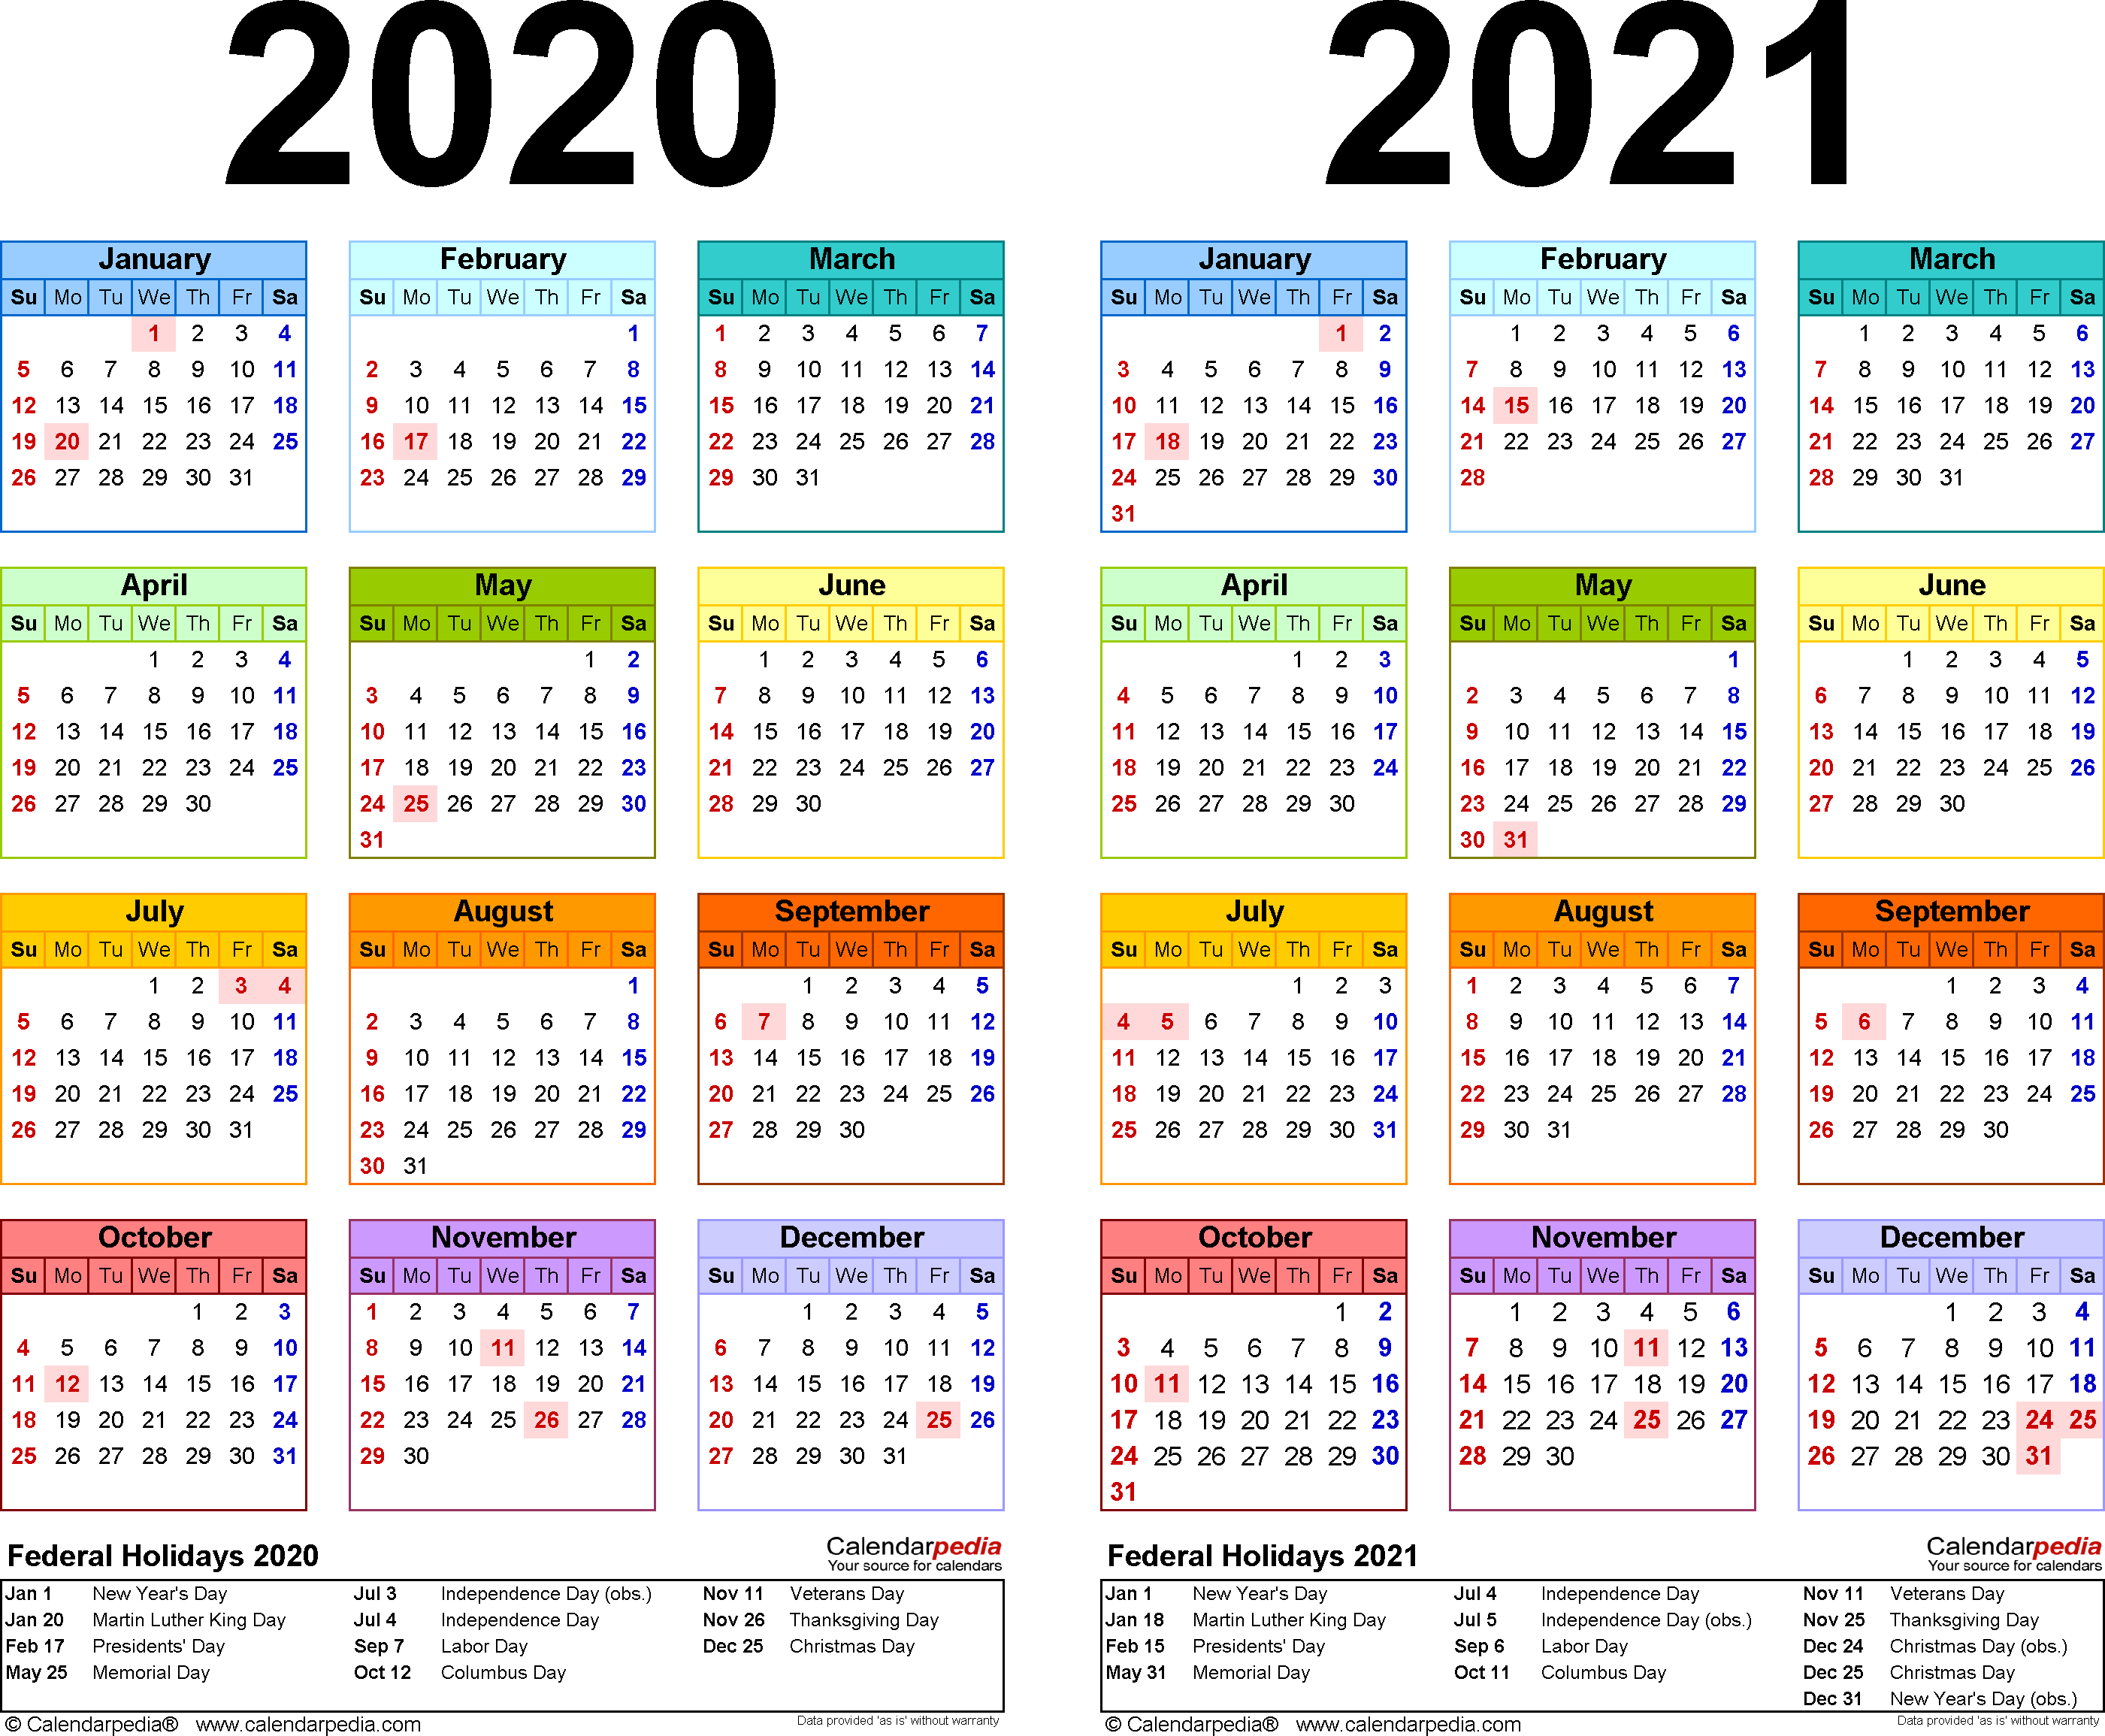 Three Year Calendar Template regarding 3 Year Calendar 2020 To 2021 Excel